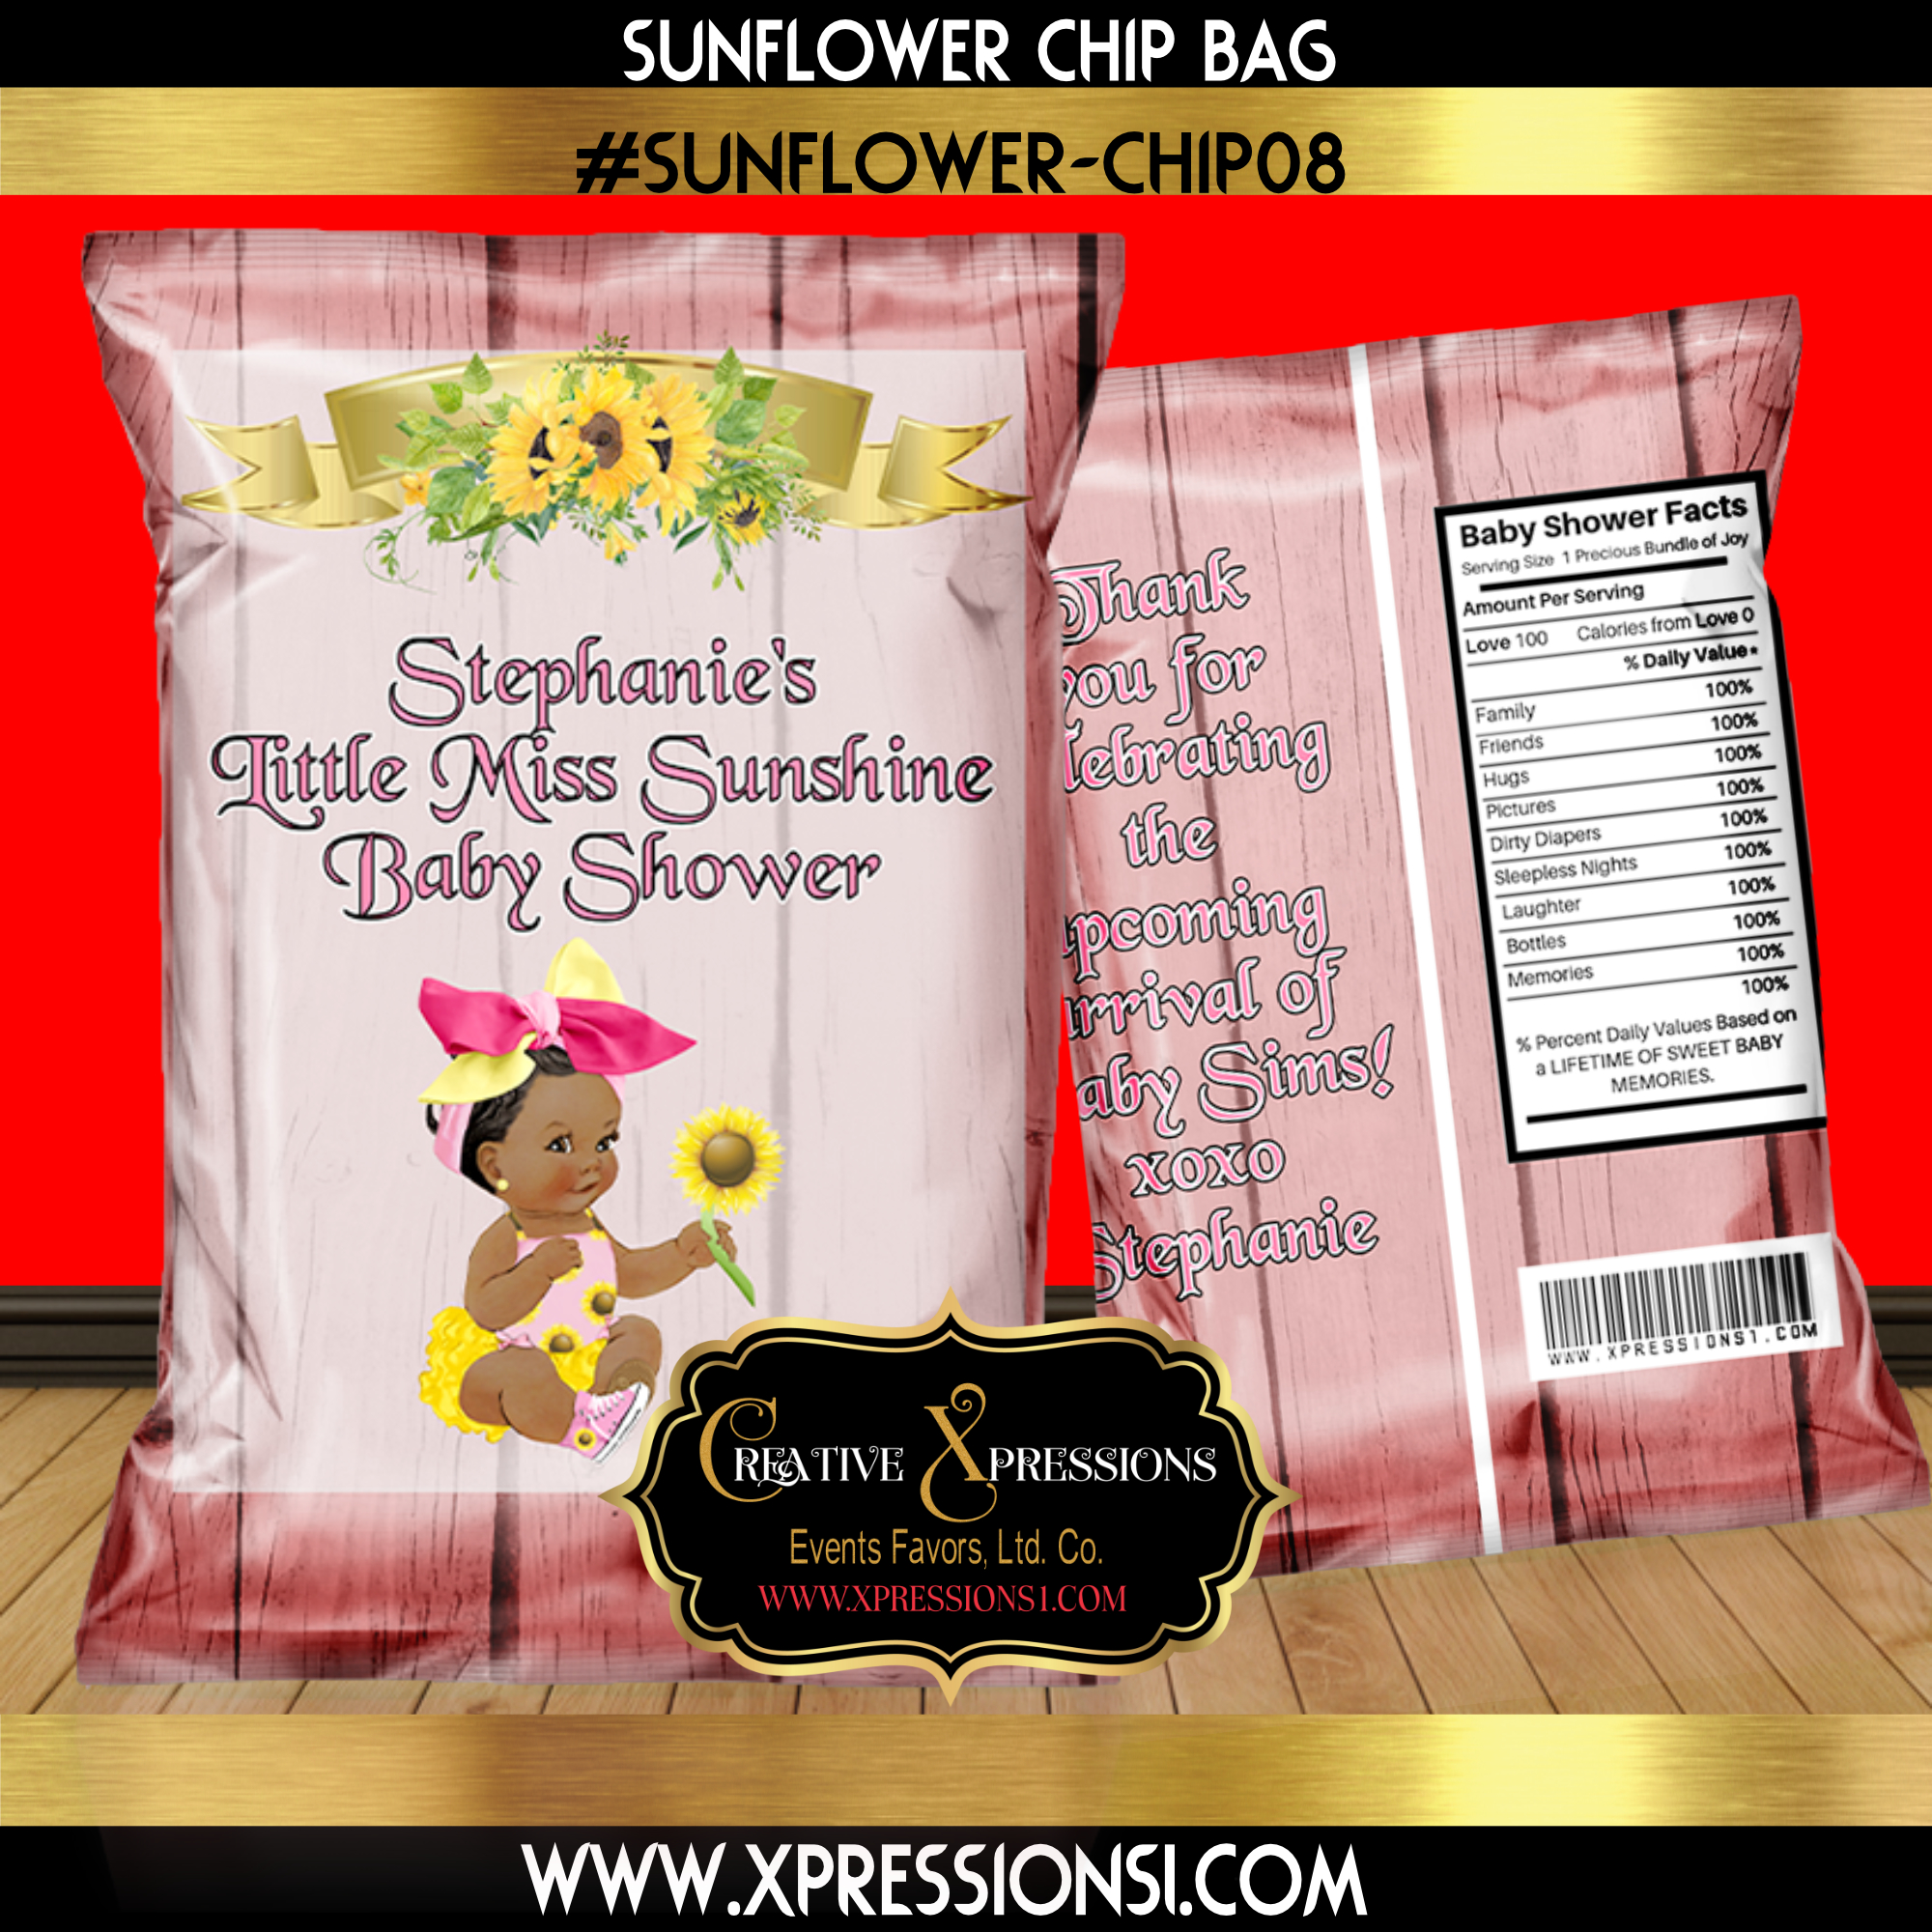 Sunflower Pink Chip Bag